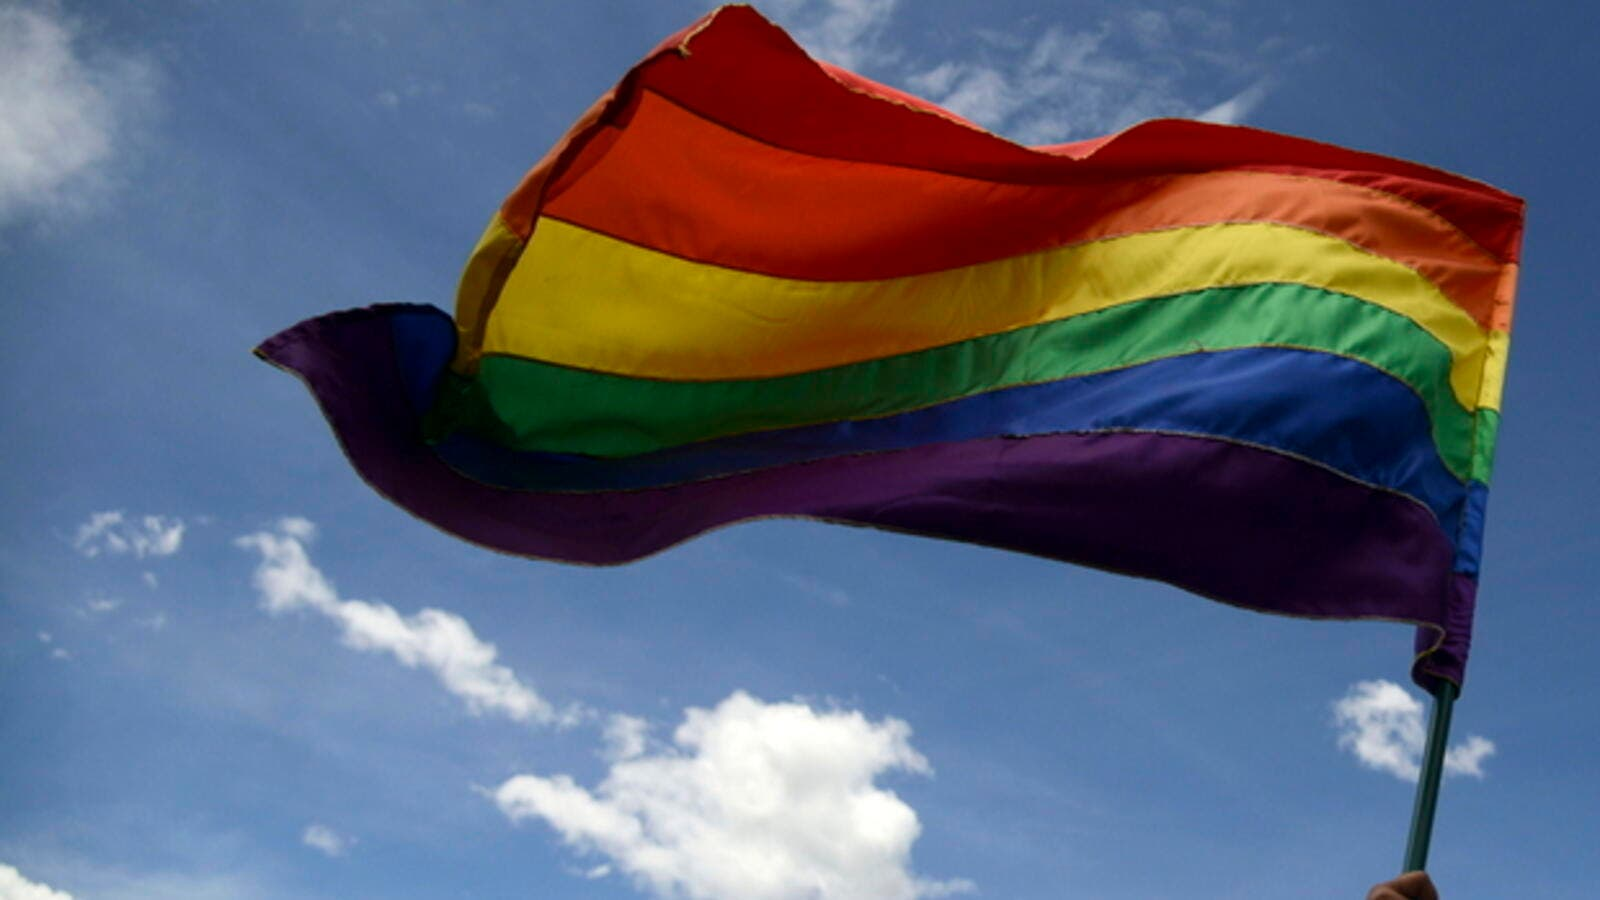 Activists and human rights lawyers have been launching campaigns to raise awareness about LGBTQ rights. (AFP/File Photo)